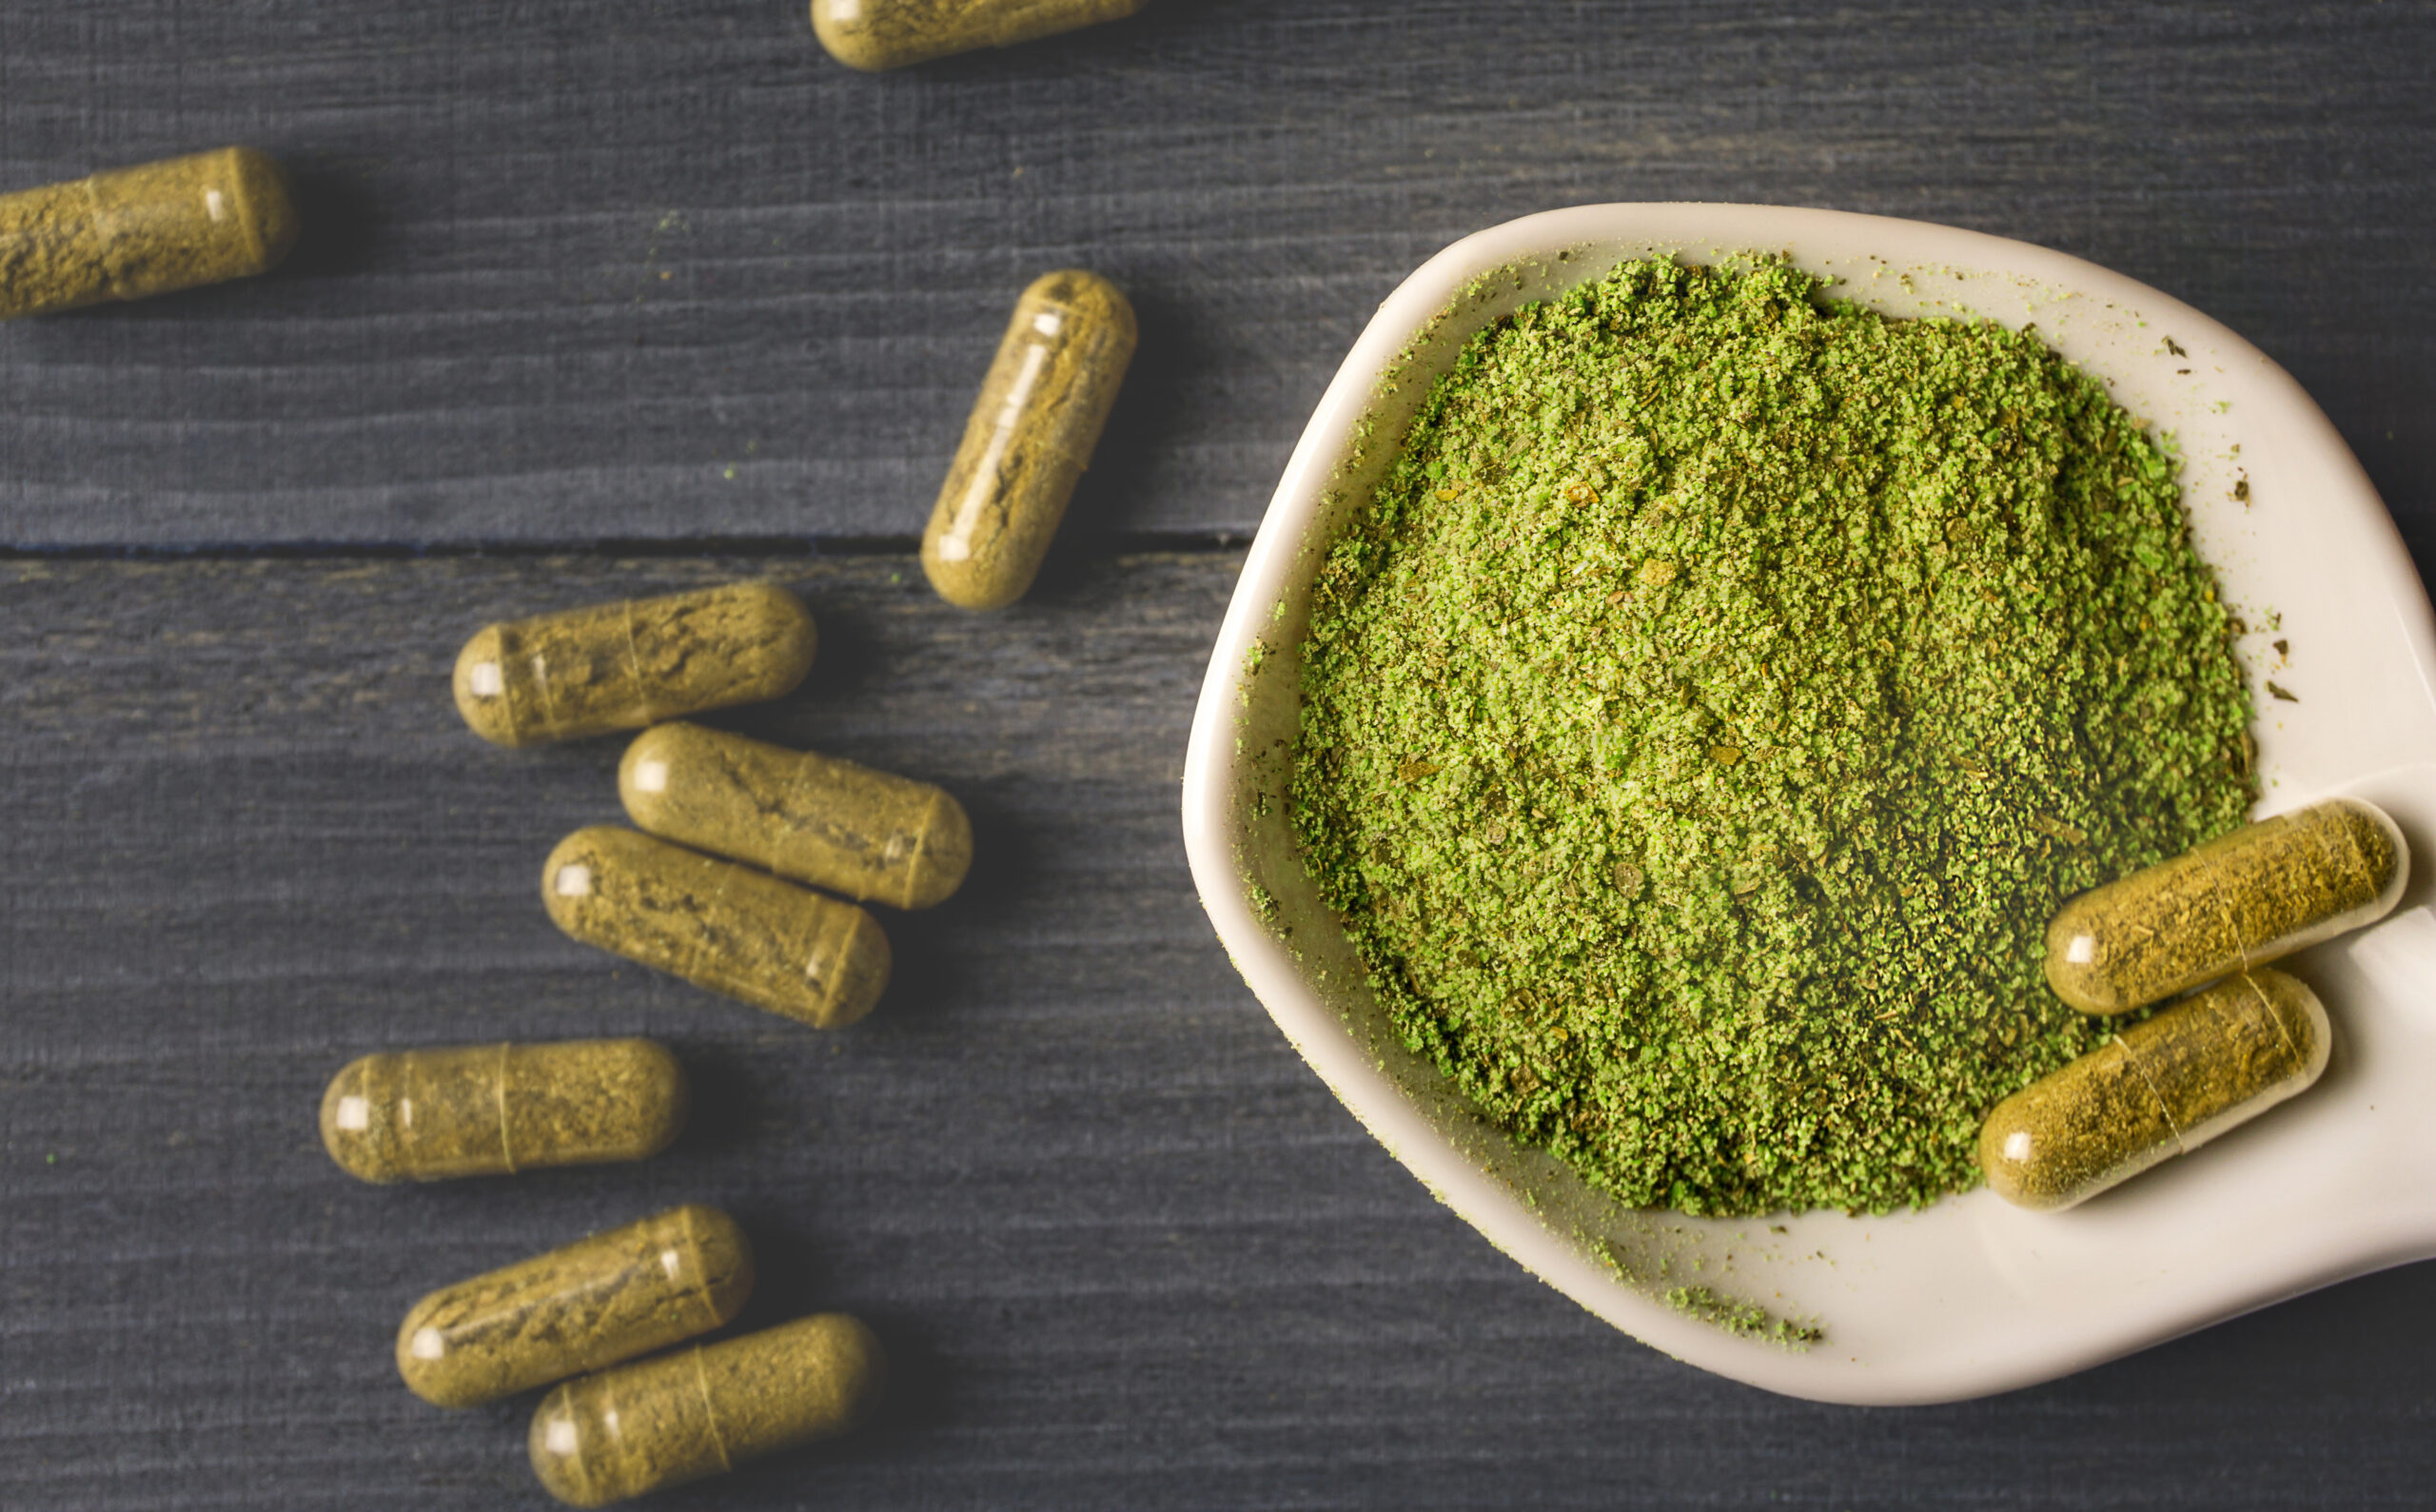 How Can You Use CBD and Kratom Together?